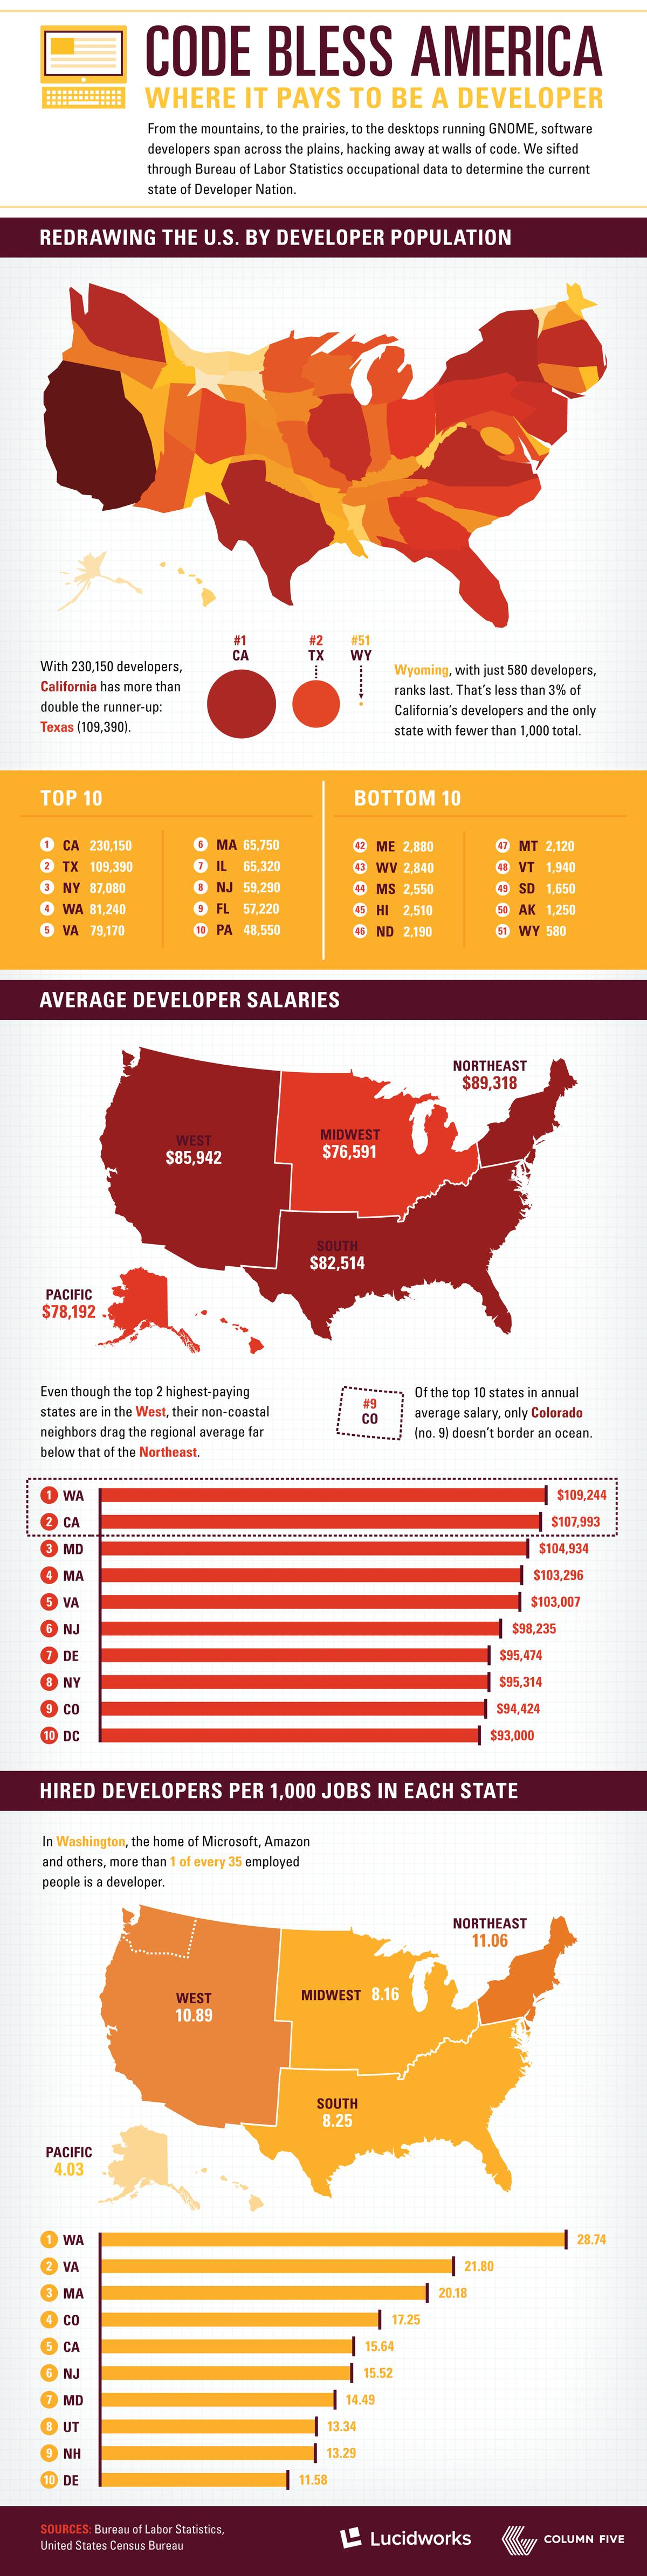 Where Are The Highest Paying States For Developers